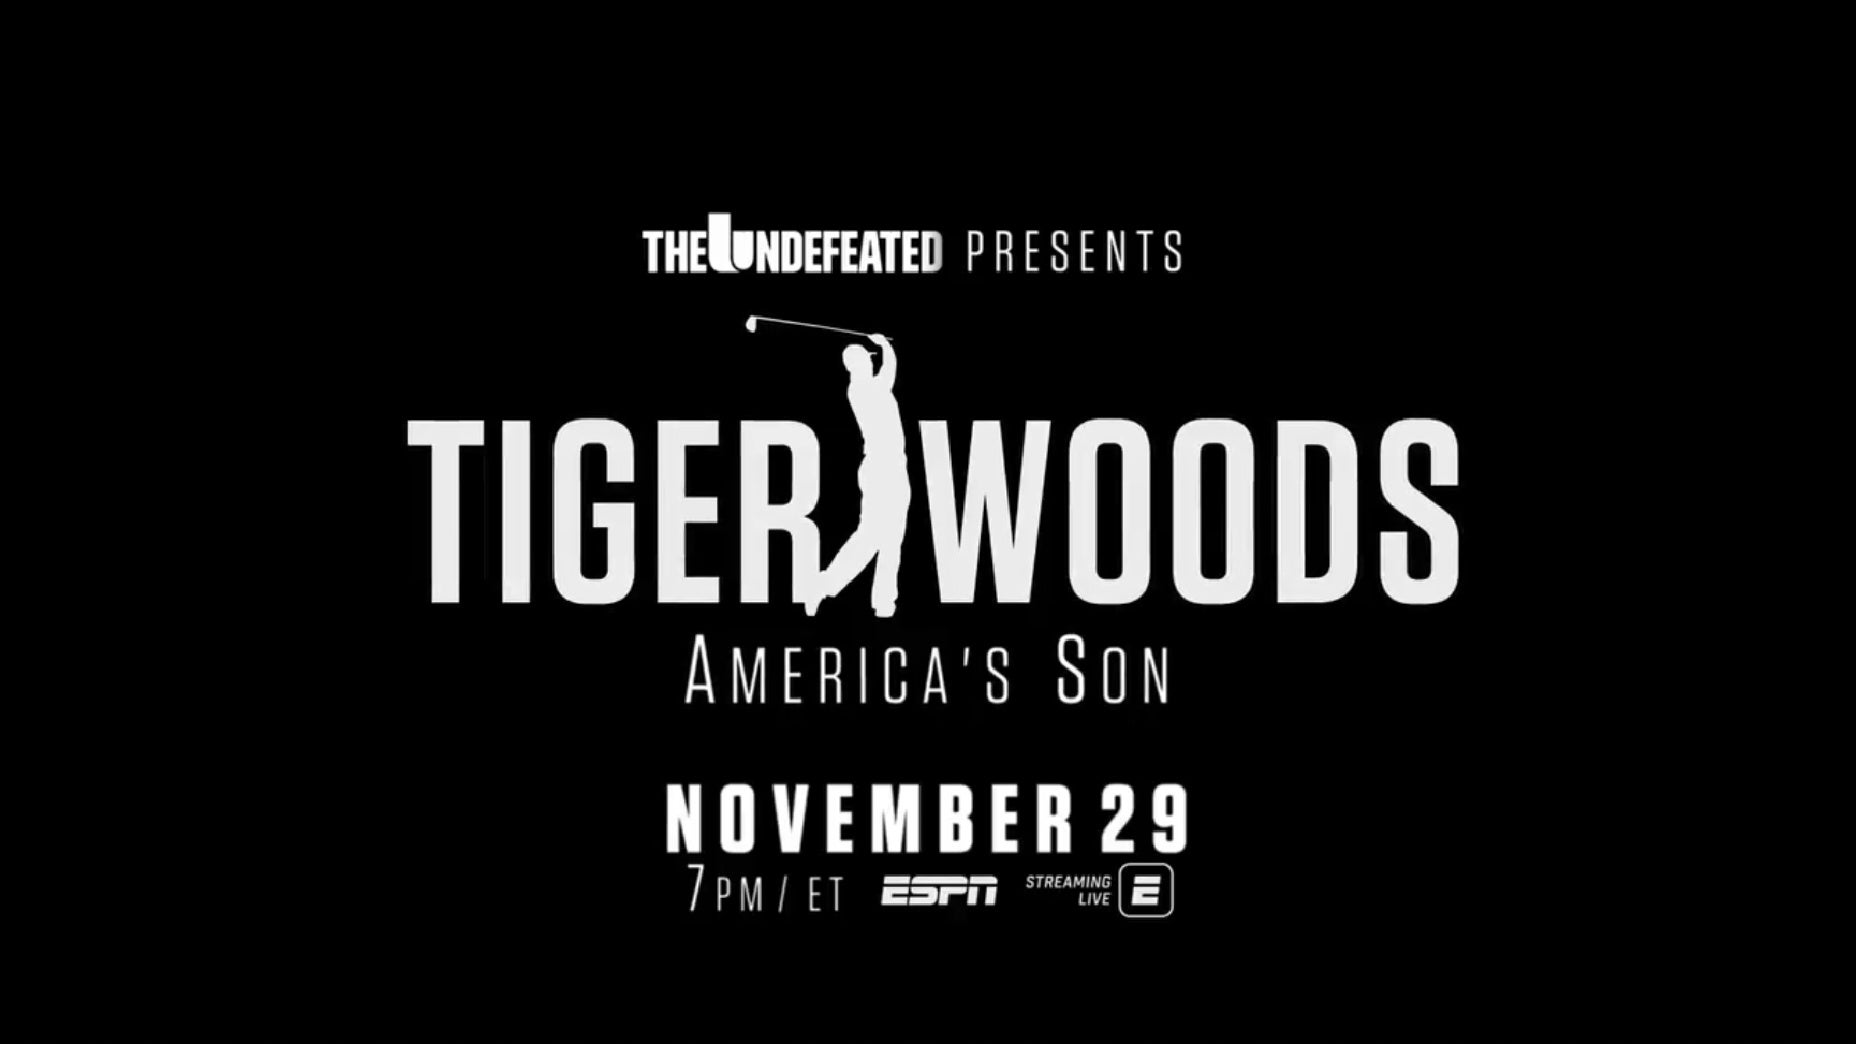 tiger woods documentary ESPN just dropped the trailer for its upcoming Tiger Woods documentary